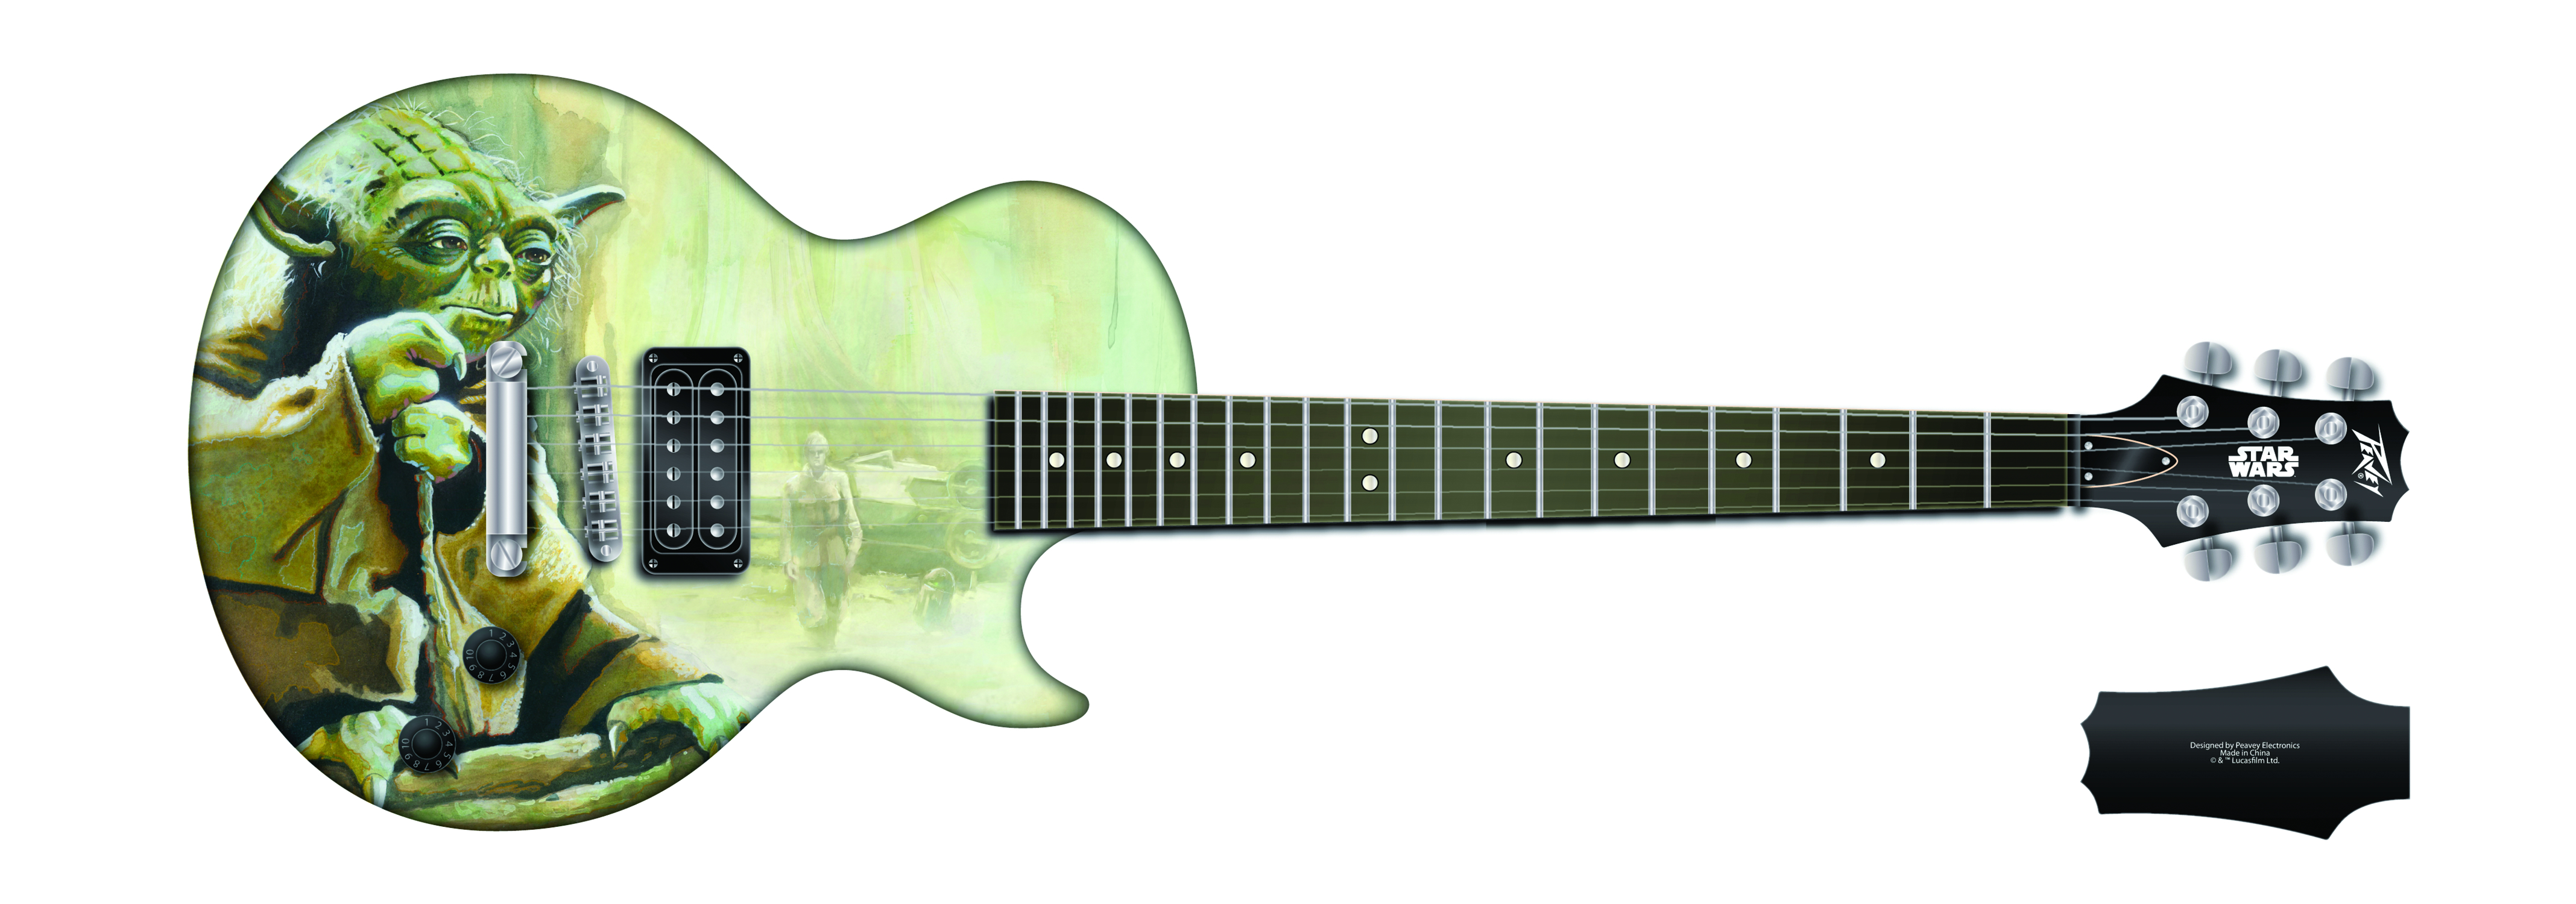 STAR WARS YODA SINGLE CUT GUITAR